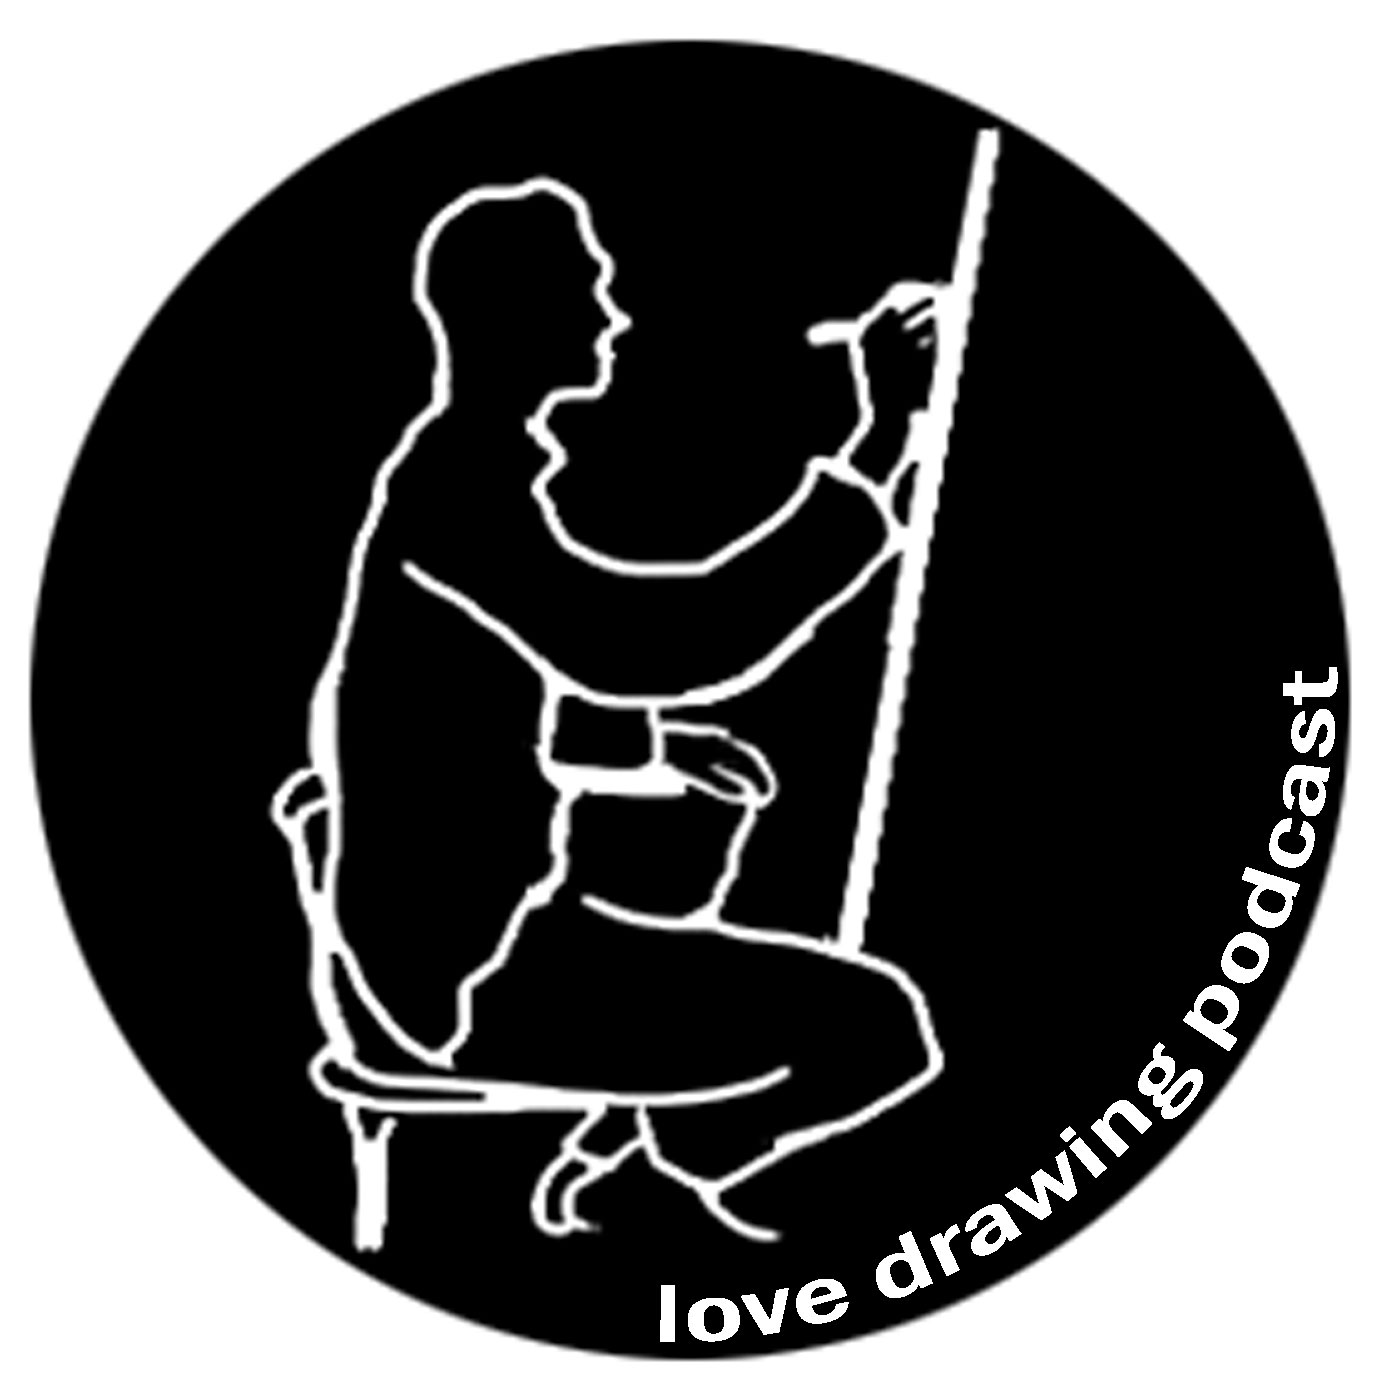 The Love Drawing Podcast